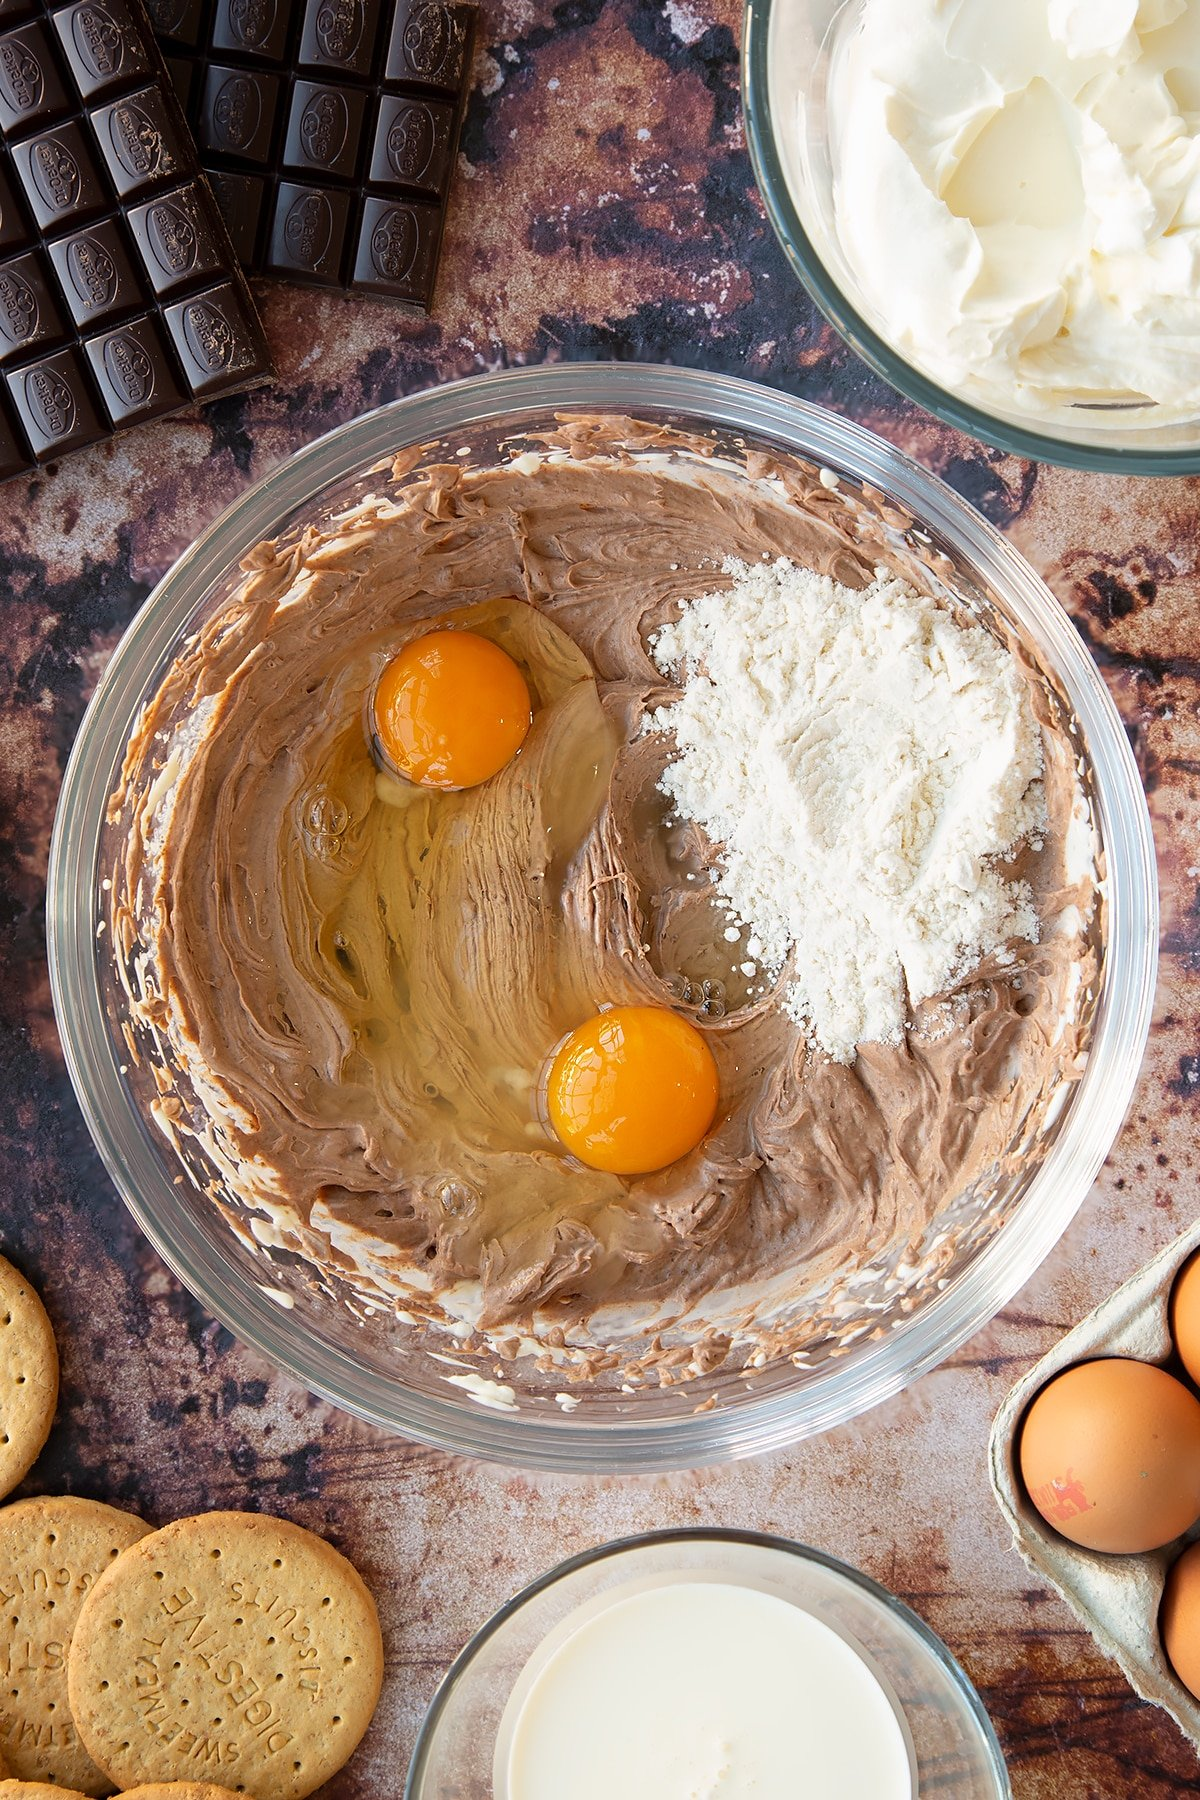 Cream cheese, sugar, cream and melted dark chocolate whisked together in a glass bowl with eggs and flour on top. Ingredients to make chocolate cheesecake cupcakes surround the bowl.